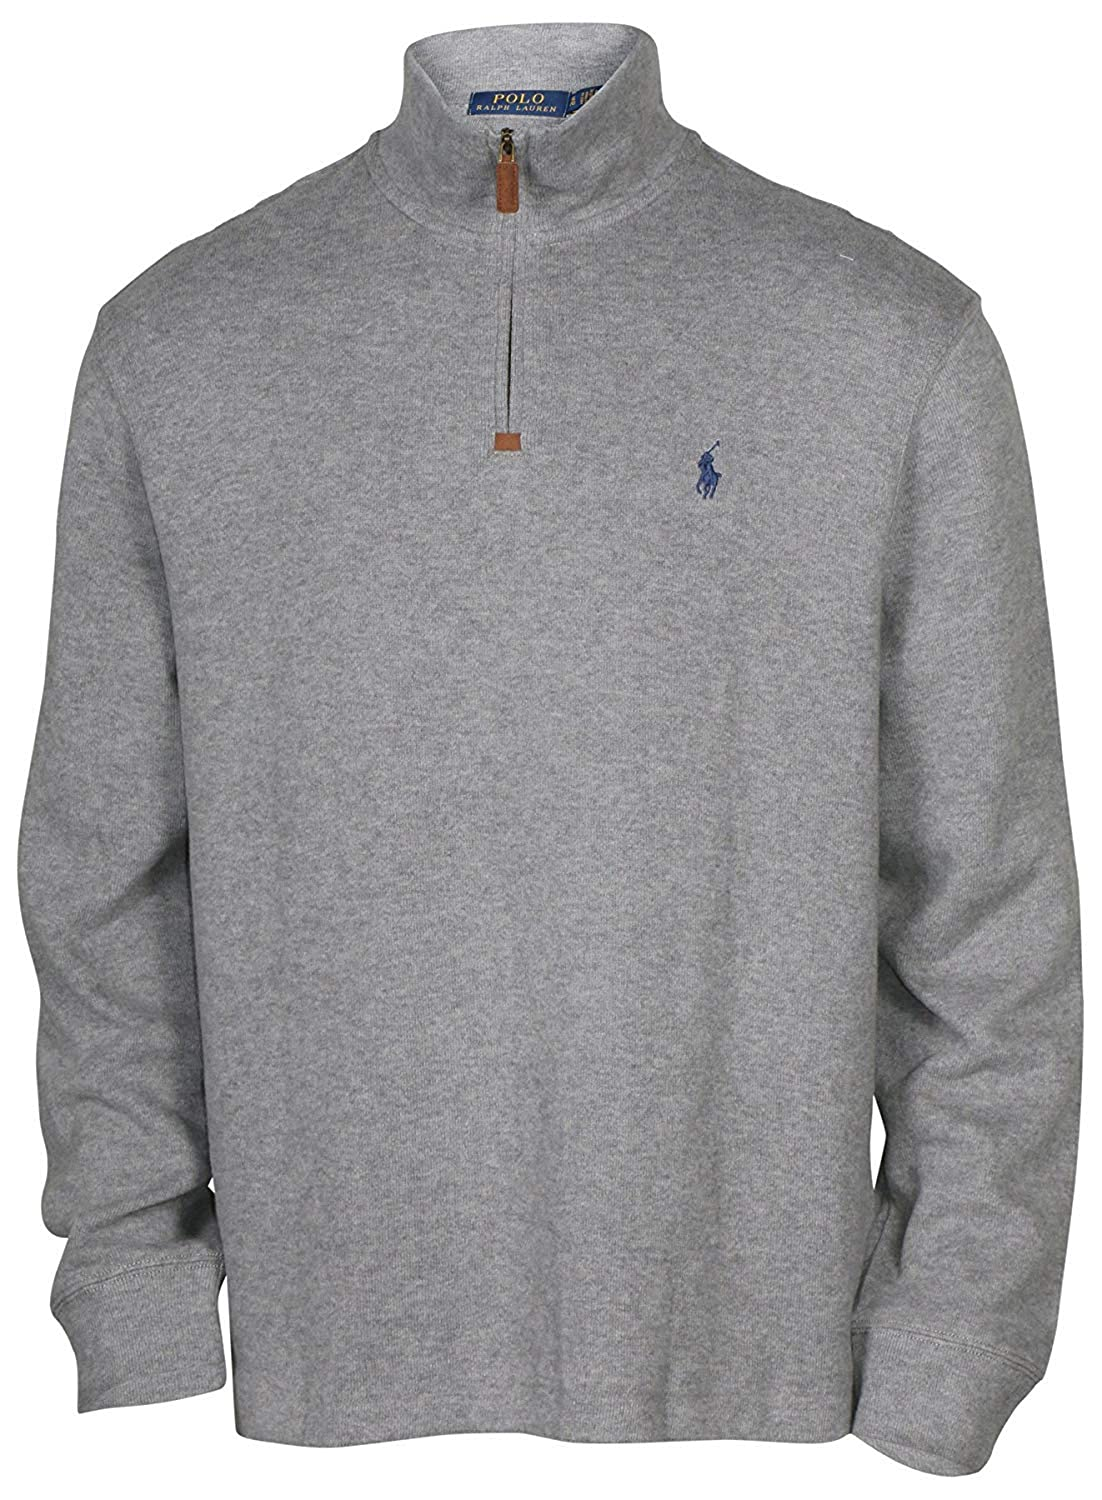 Polo Ralph Lauren Mens French Rib Knit Half Zip Pullover Sweater